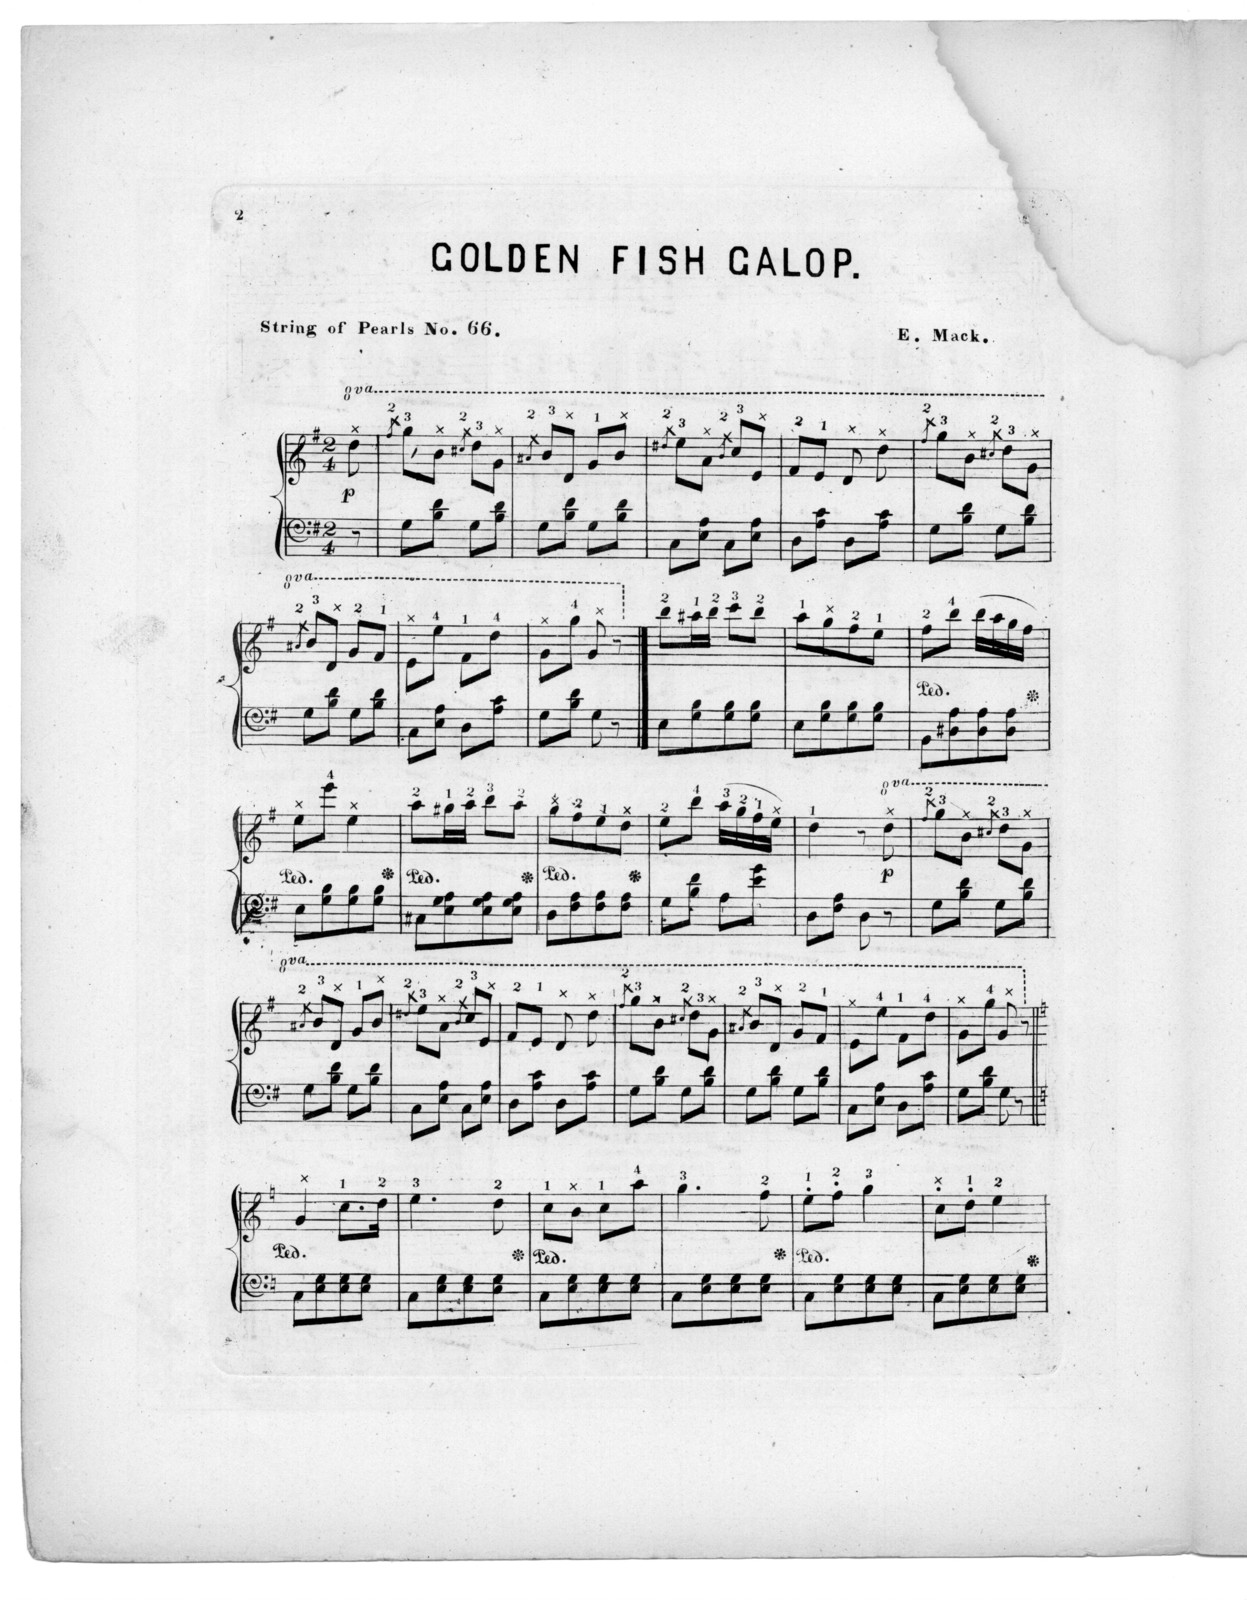 Golden fish galop